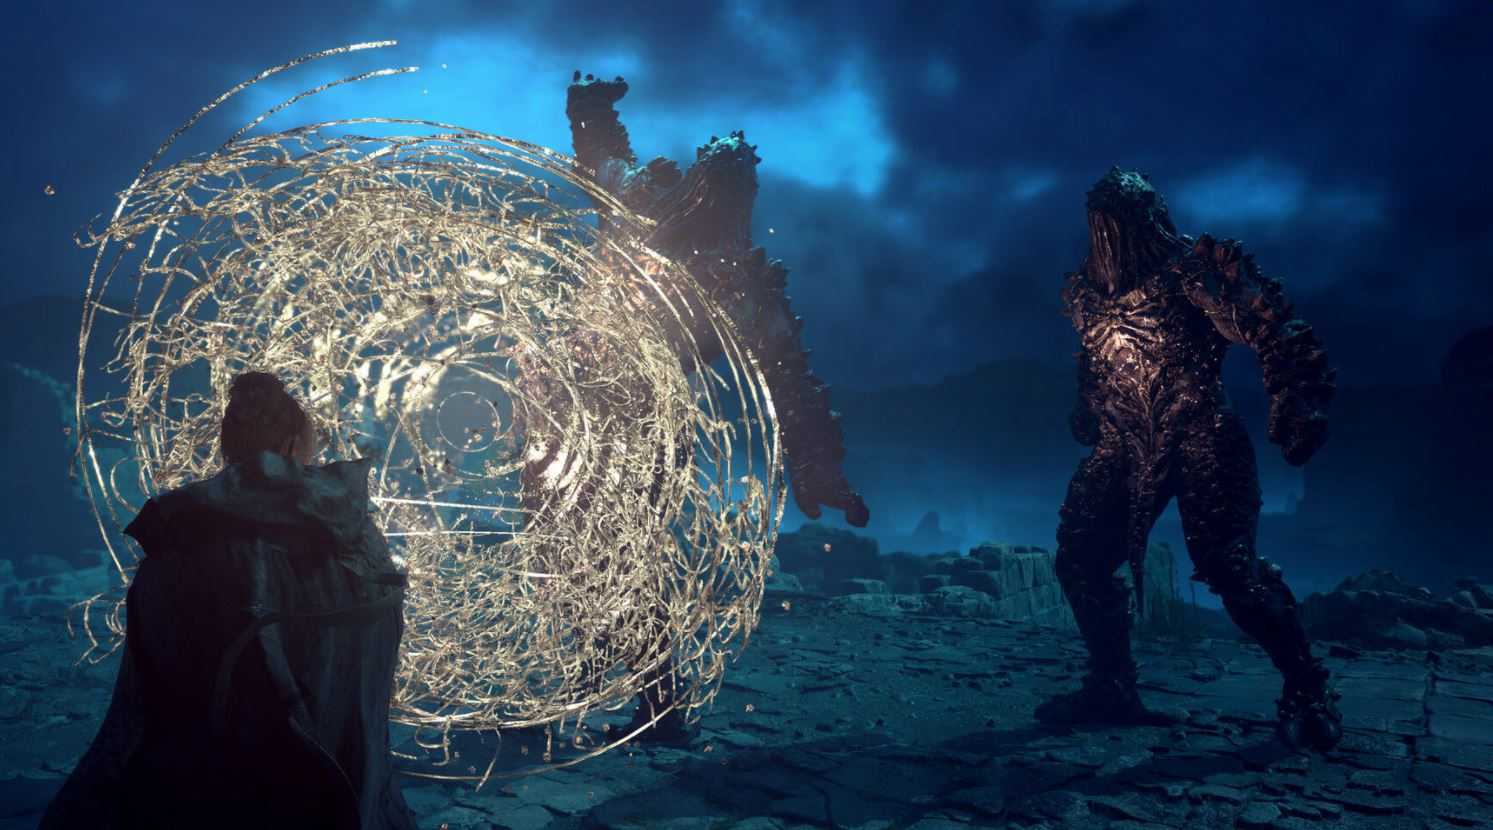 forspoken-is-aiming-to-achieve-the-highest-quality-visuals-ever-seen-in-an-open-world-game-will-use-amd-fidelityfx